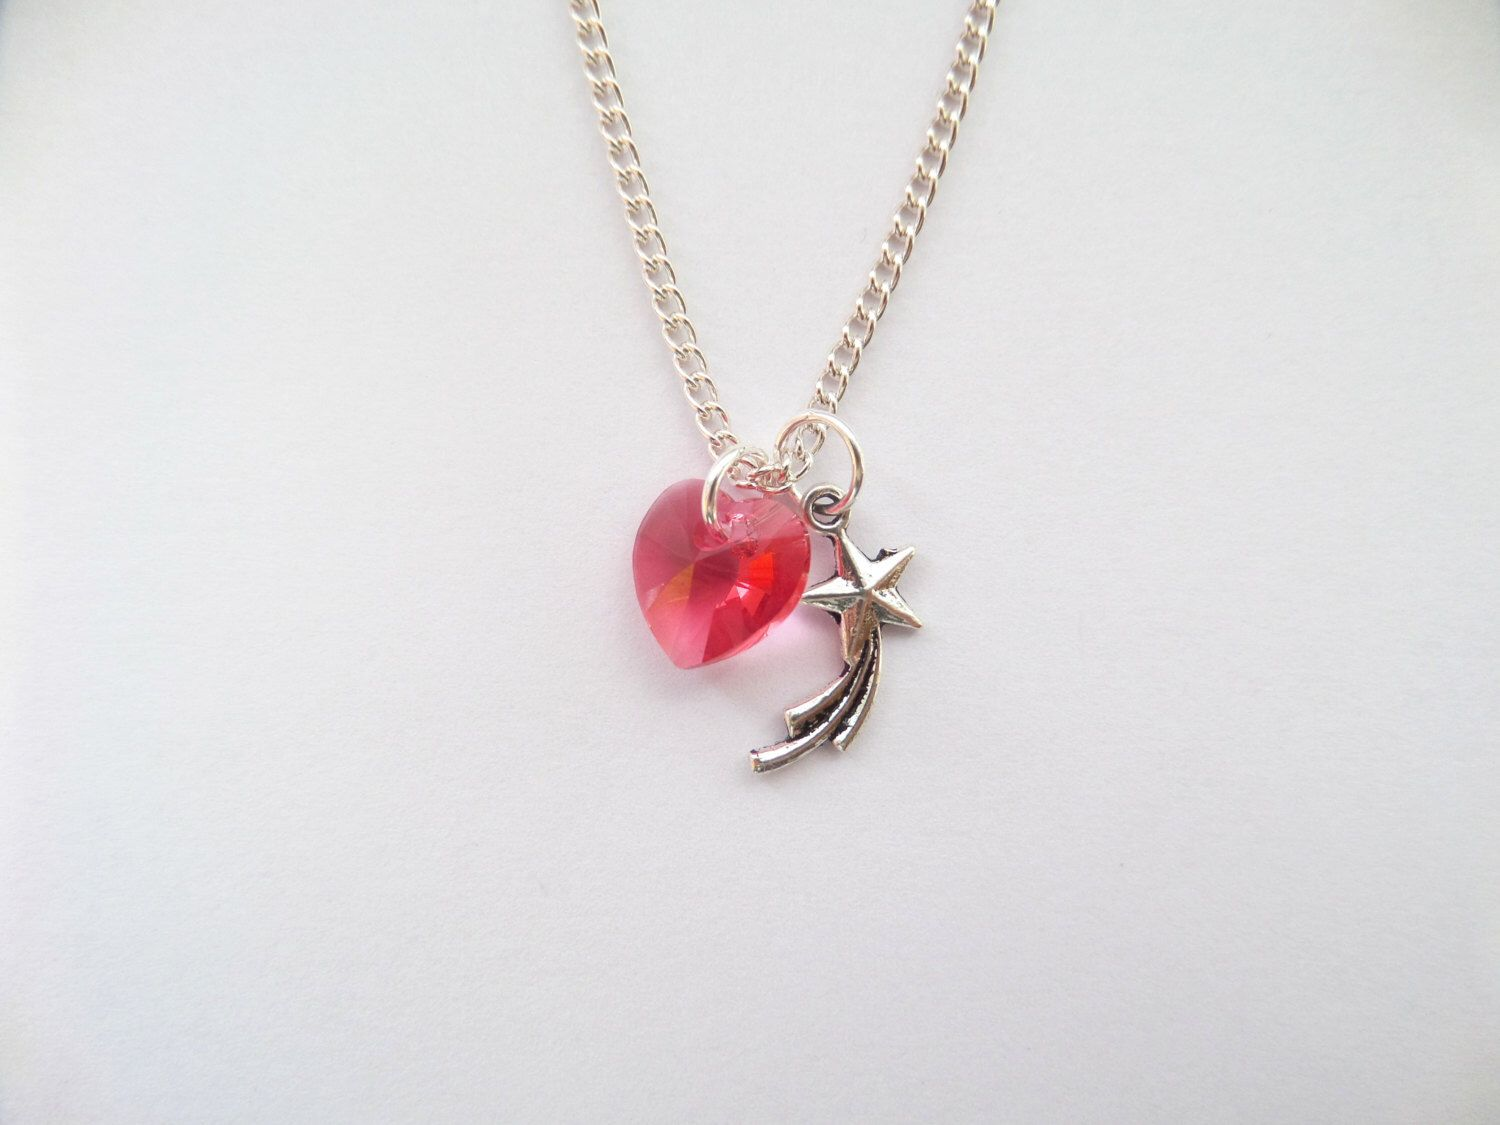 Gravity Falls Shooting Star Necklace Pendant chain